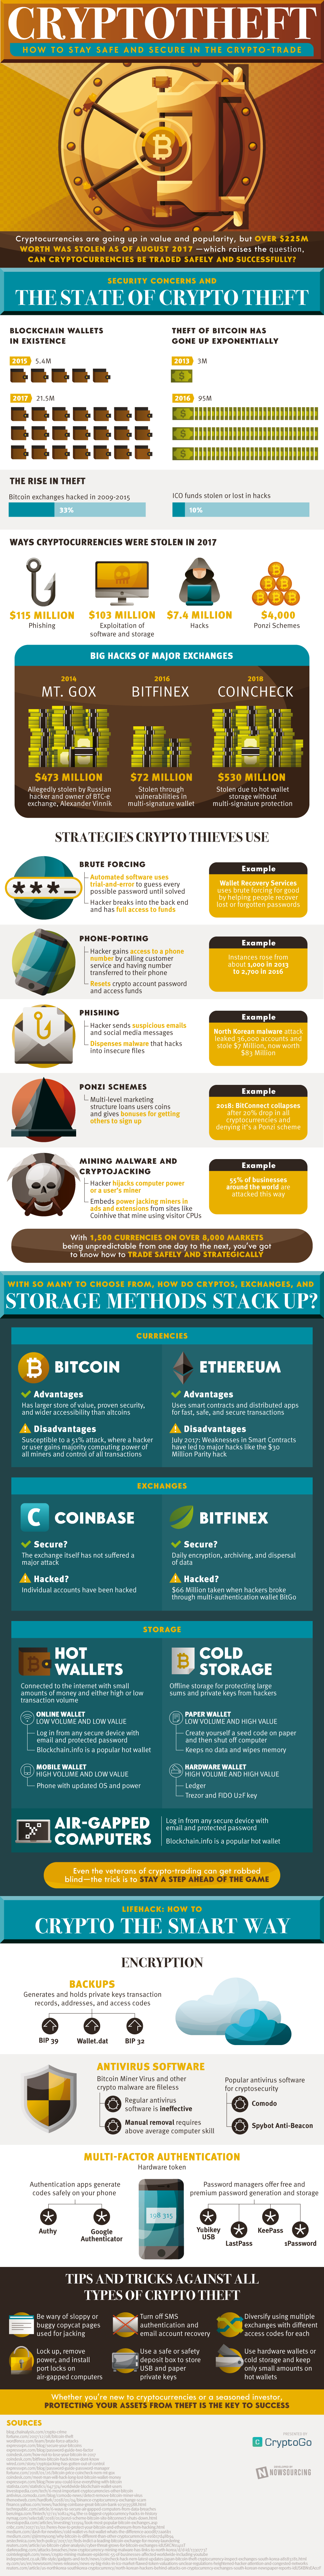 [Infographic] Crypto-theft: Safety and security in the crypto-trade